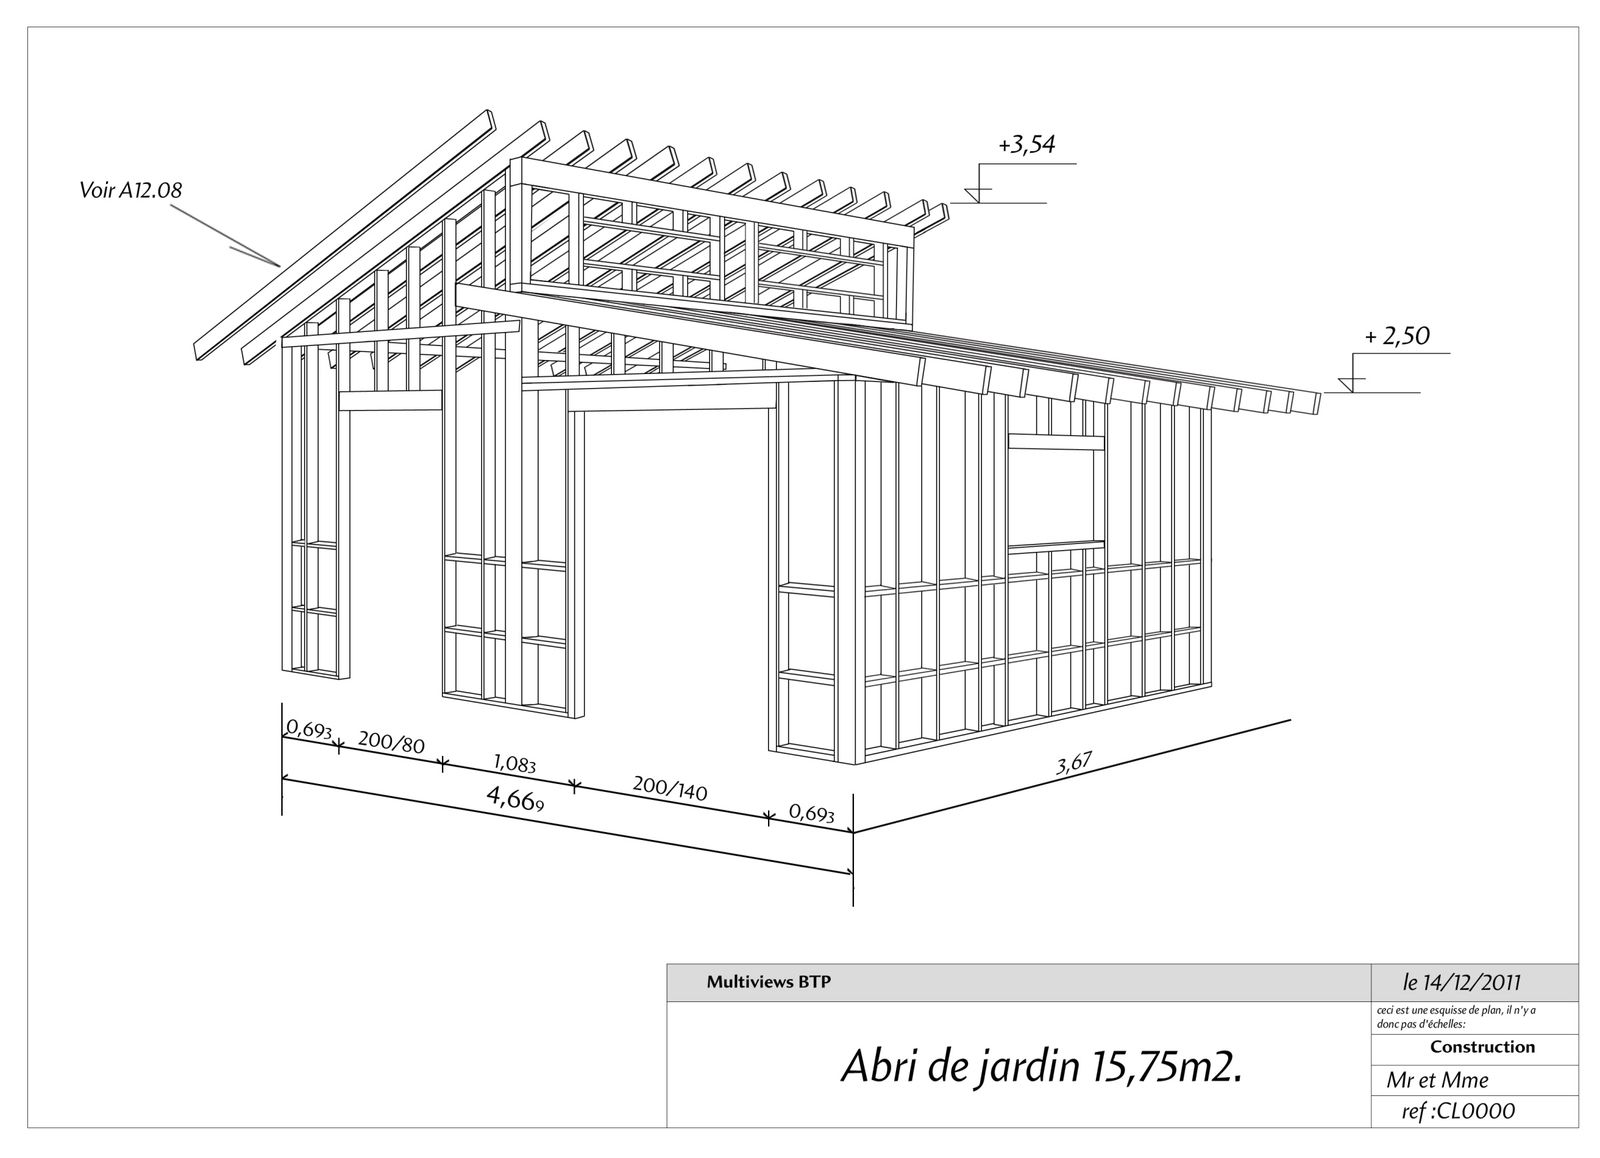 Plan abri de jardin - Multiviews BTP